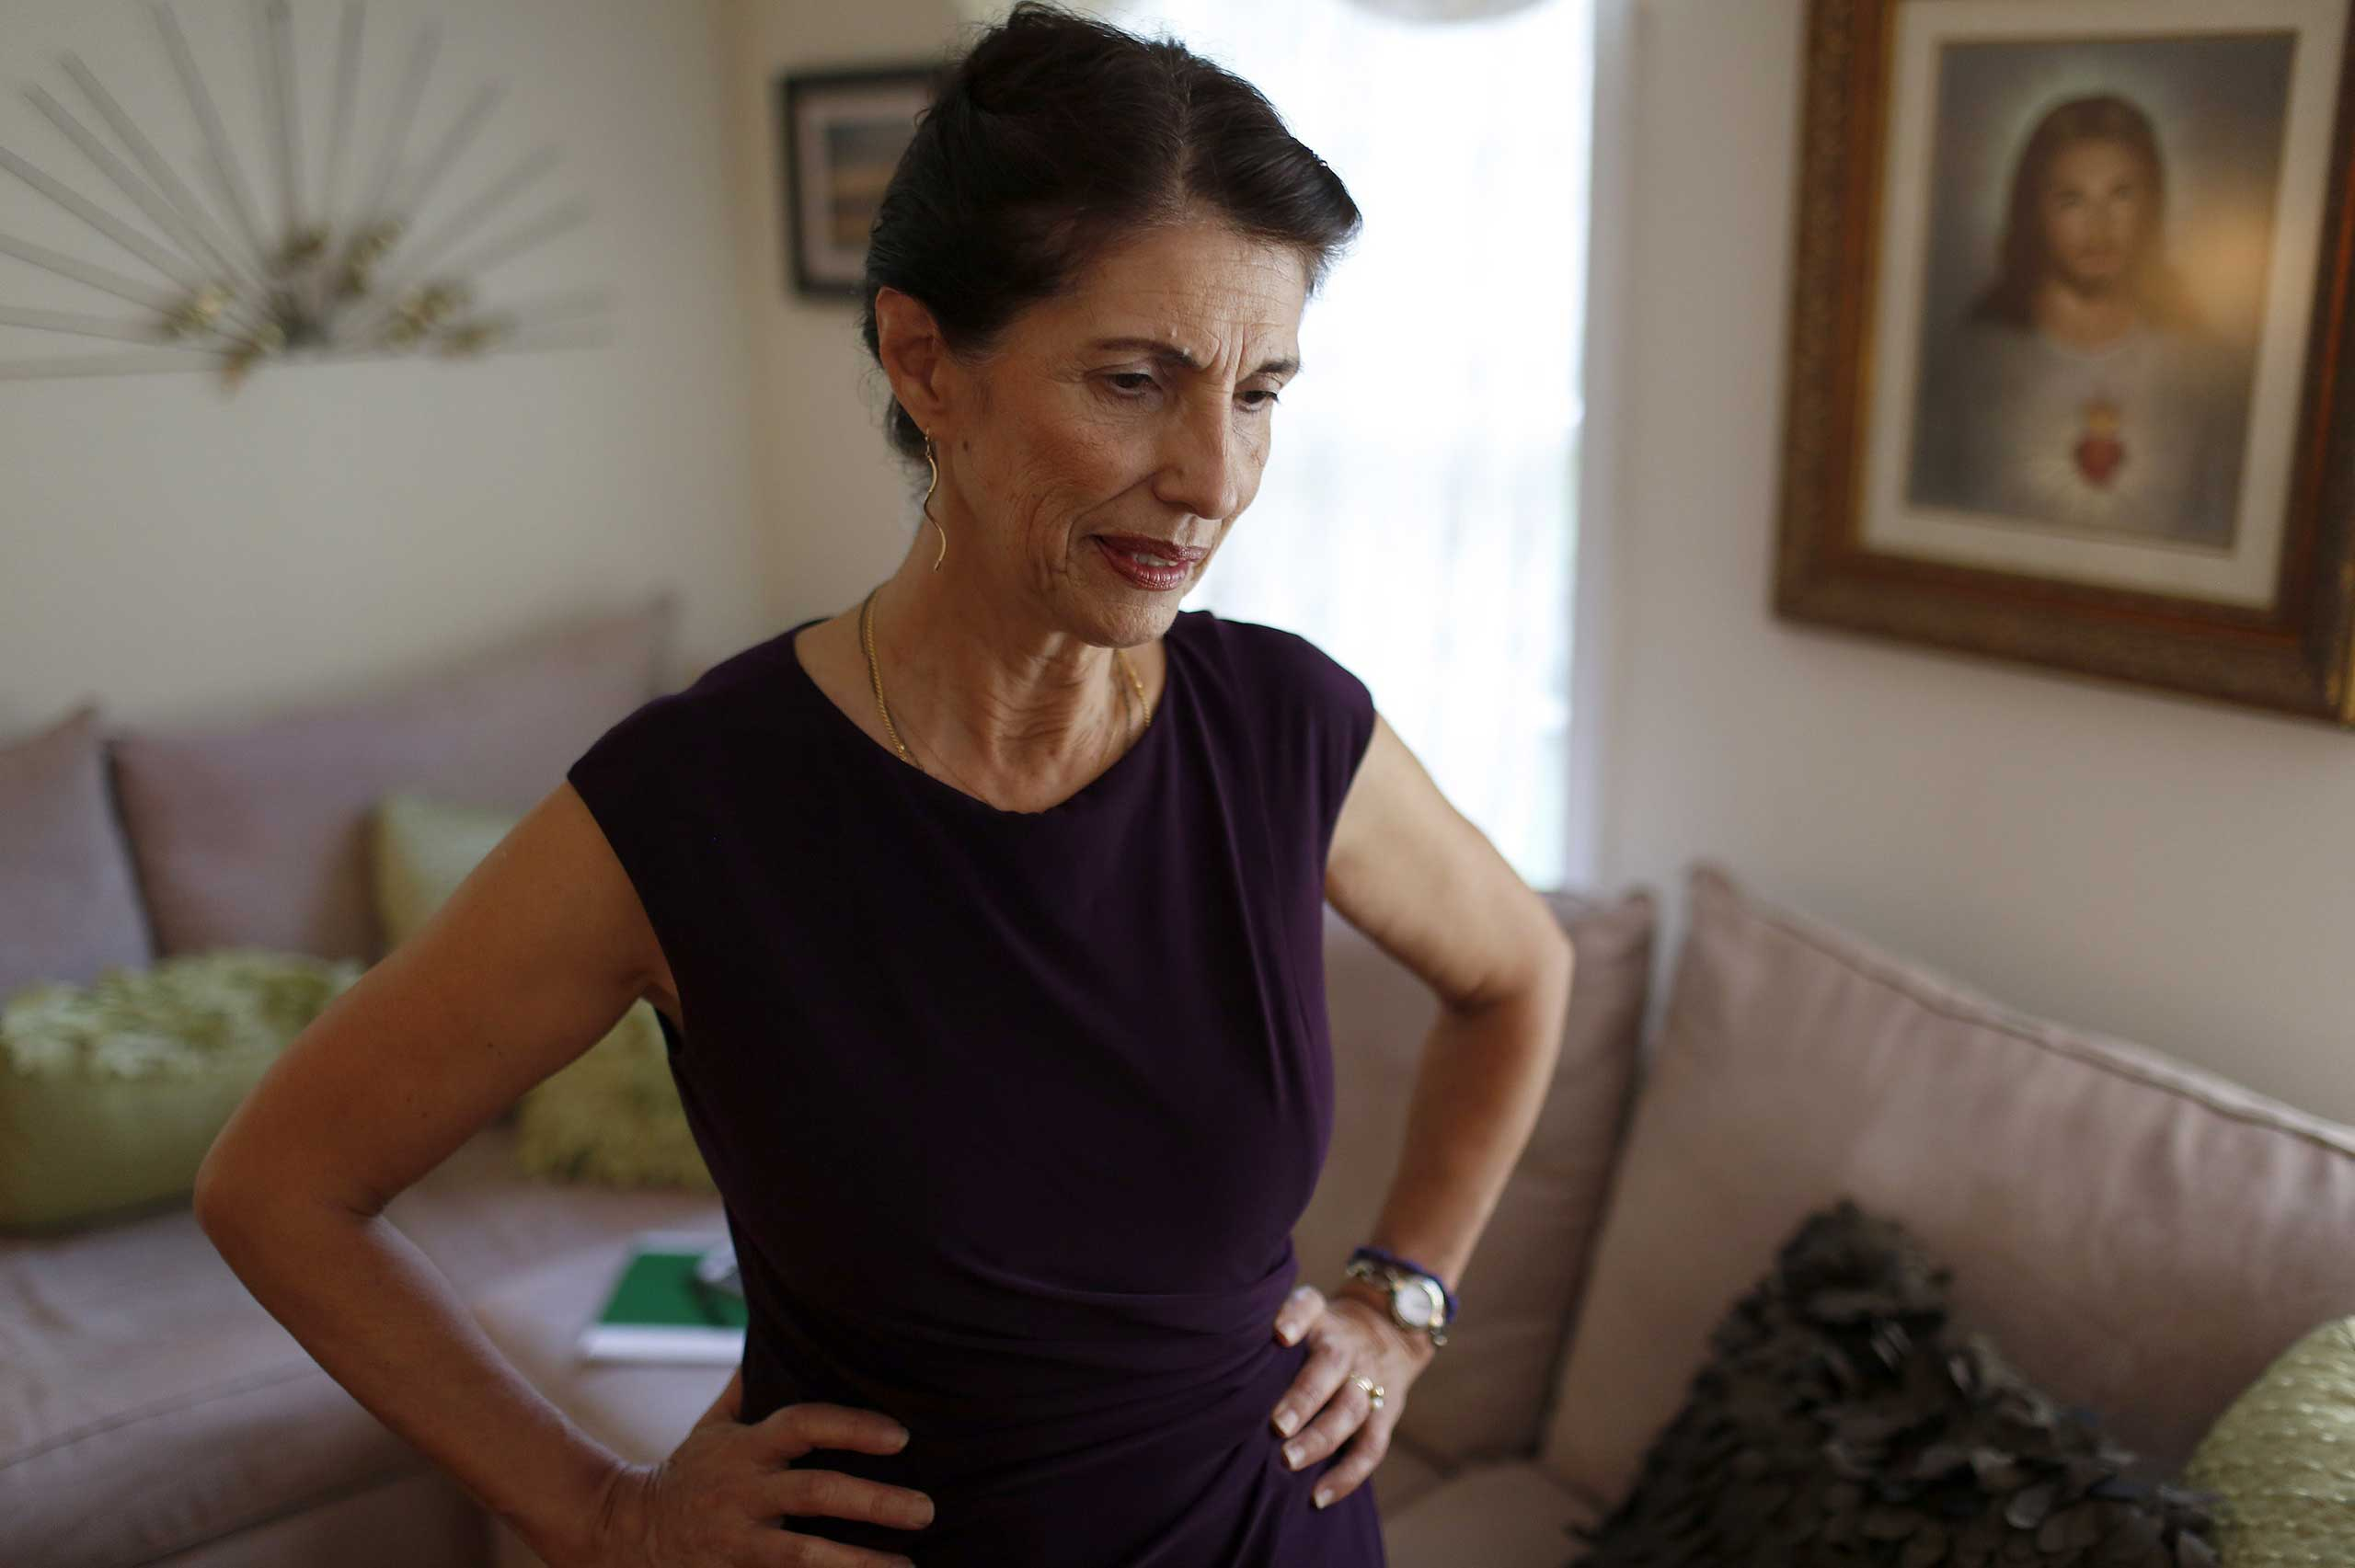 Diane Foley, mother of James Foley, pauses for a moment during an interview at her home in Rochester, N.H. in 2014.